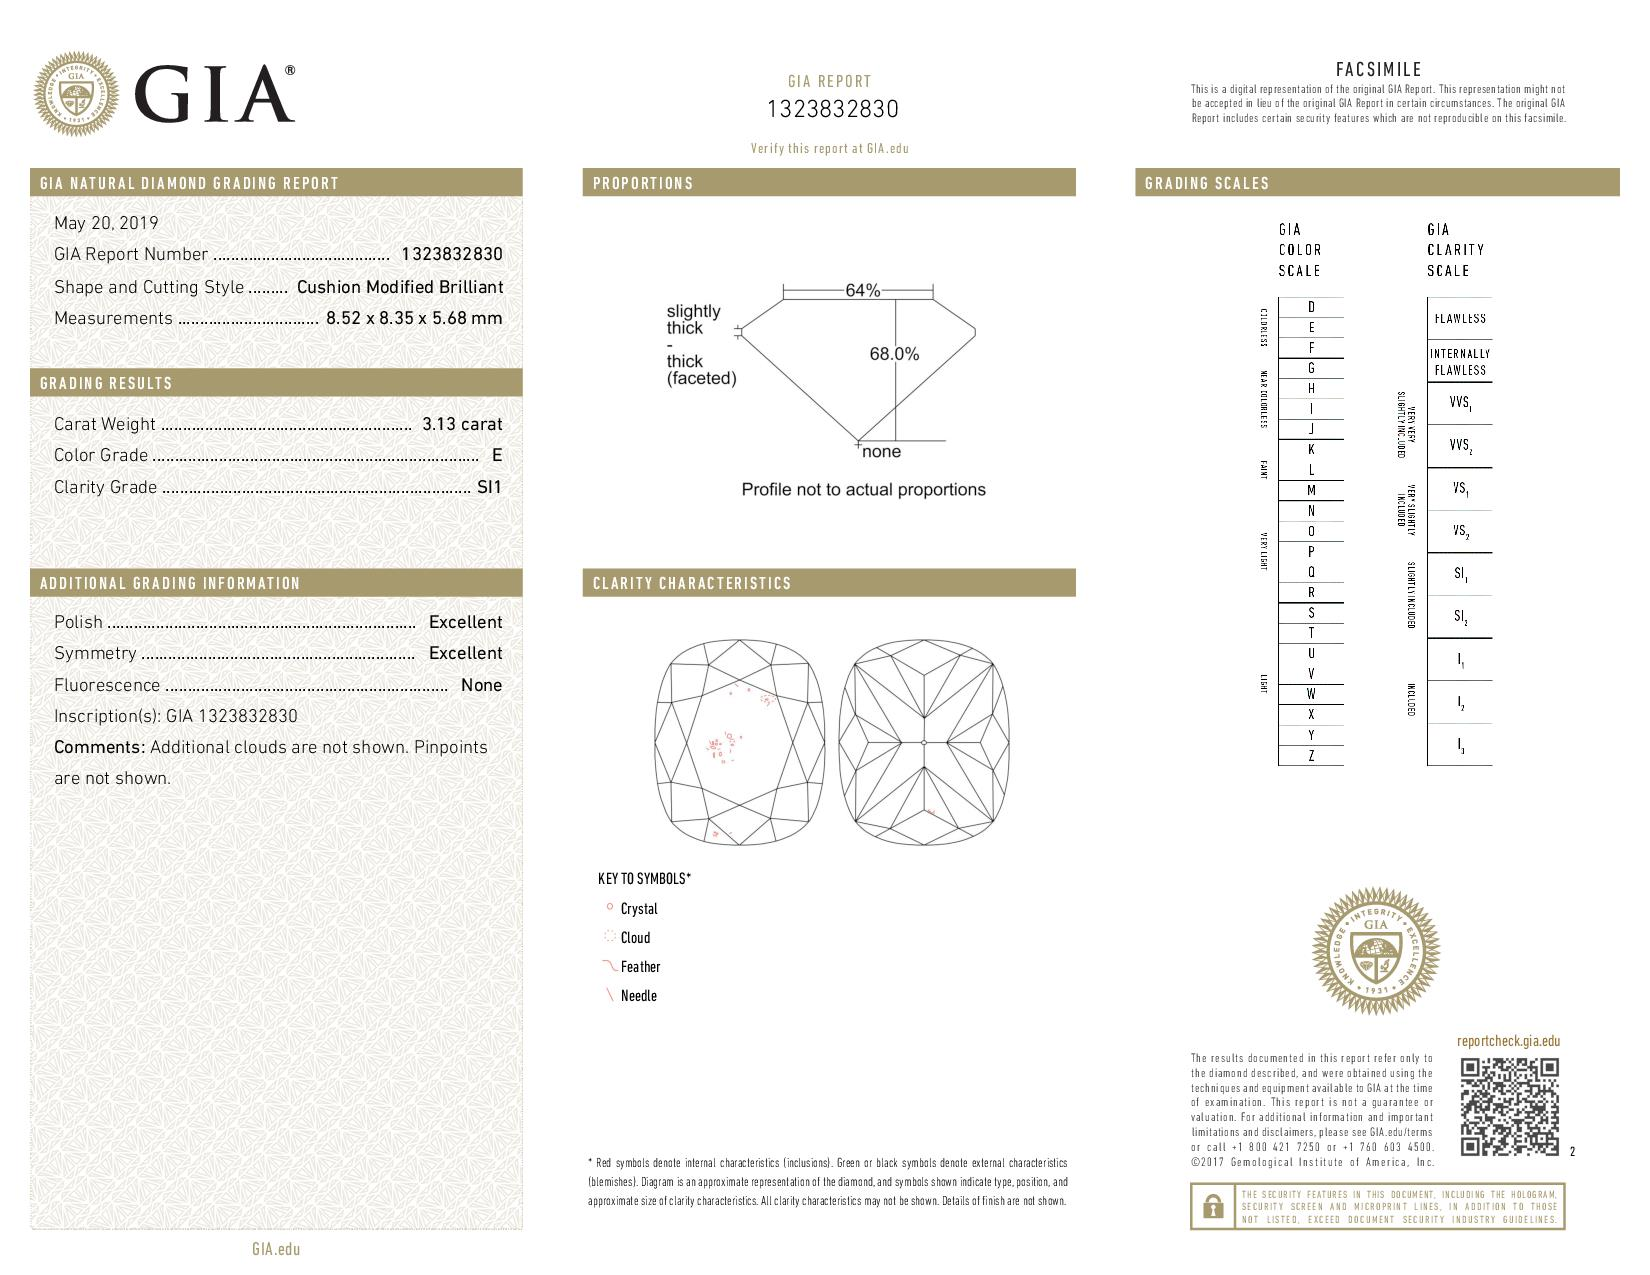 This is a 3.13 carat cushion shape, E color, SI1 clarity natural diamond accompanied by a GIA grading report.